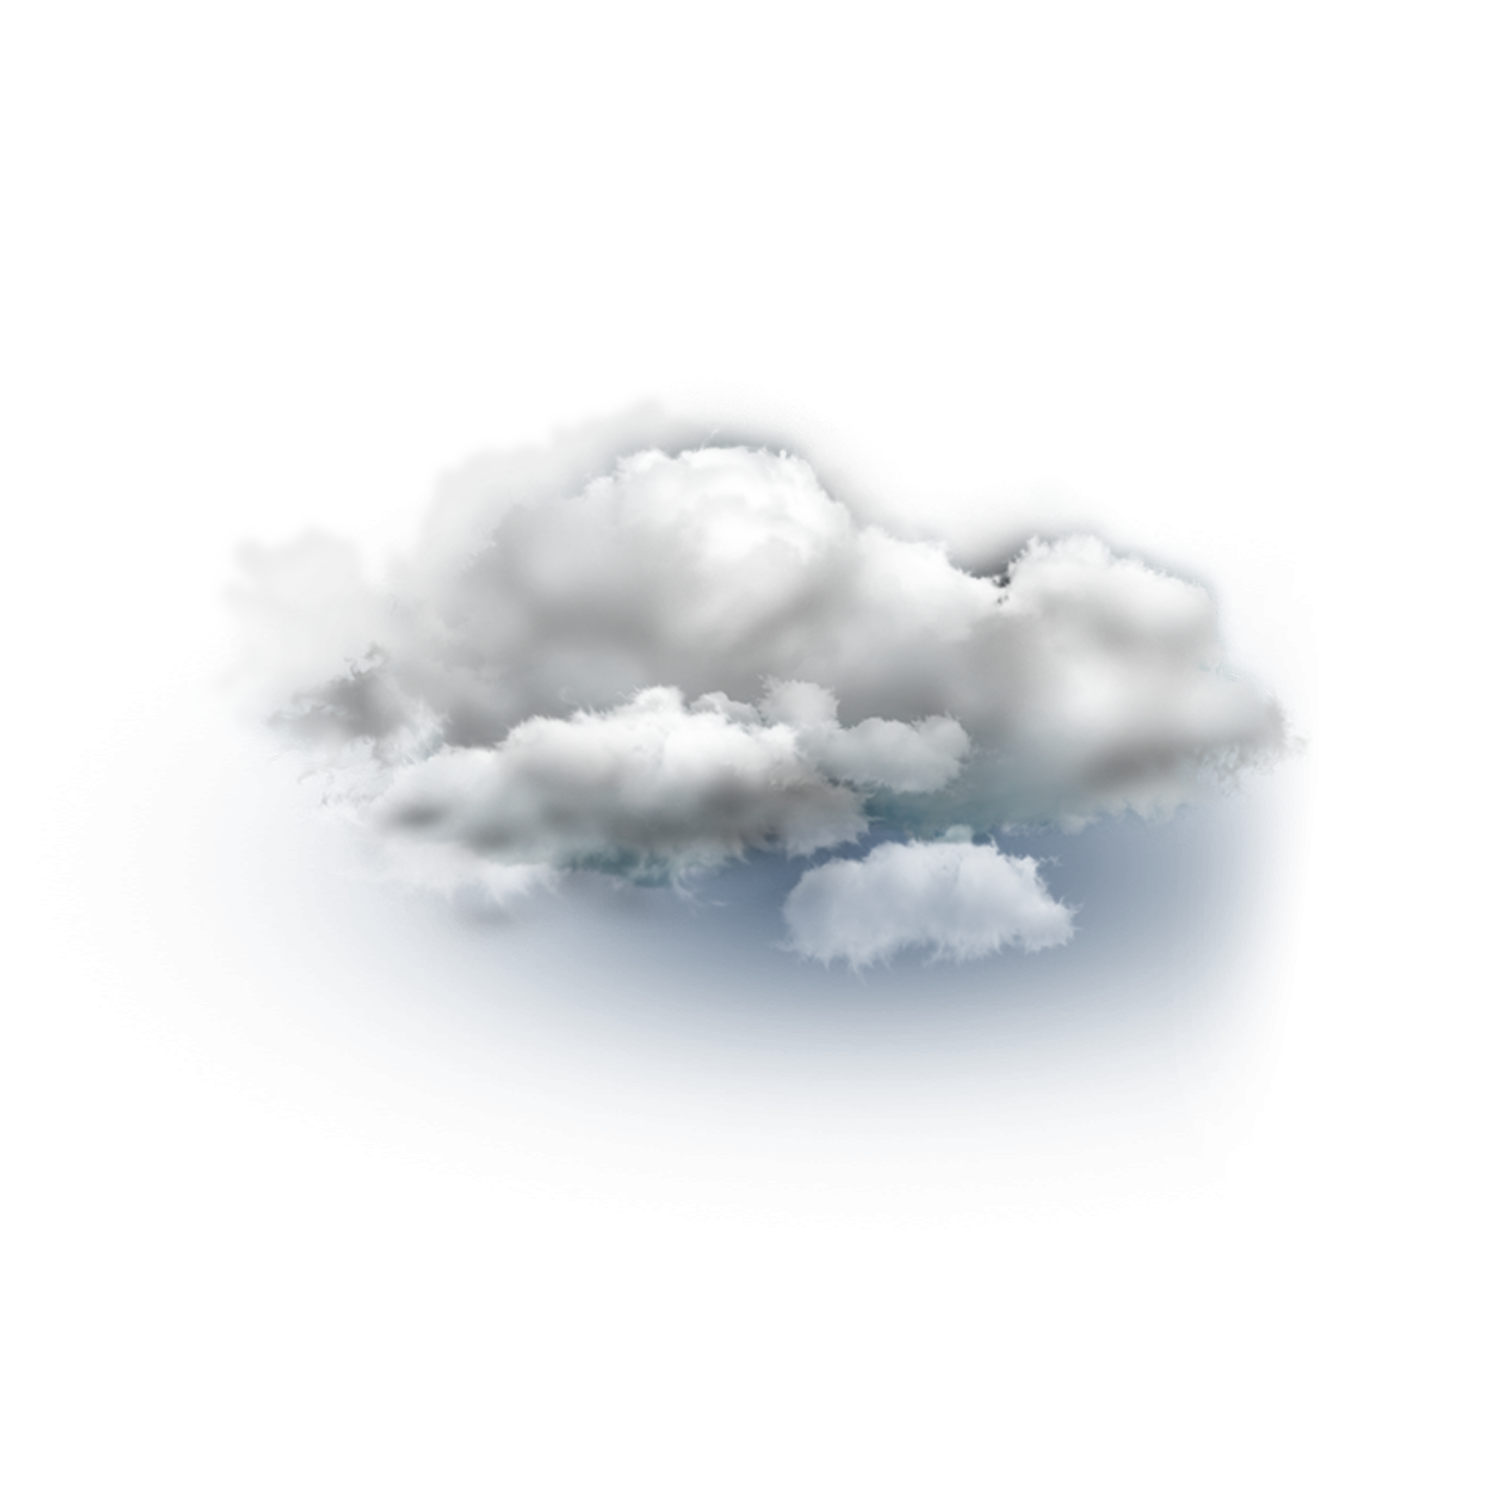 Clouds Thick Overcast Sky Cloud Free Clipart HD PNG Image